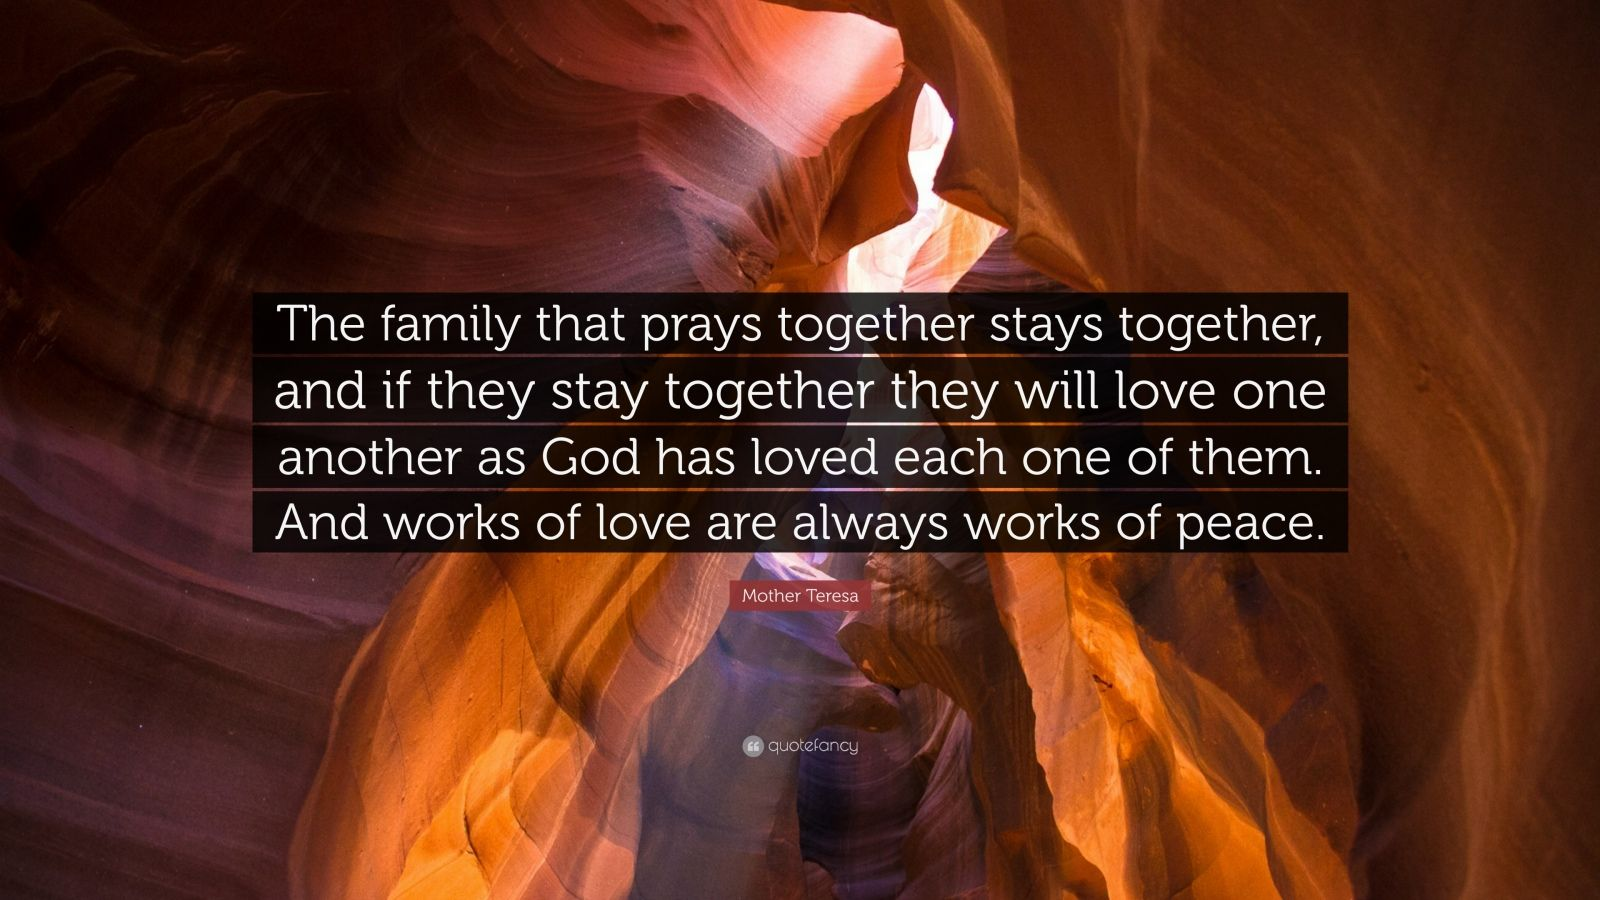 """Mother Teresa Quote: """"The family that prays together stays together, and if they stay together they will love one another as God has loved each one of them. And works of love are always works of peace."""""""